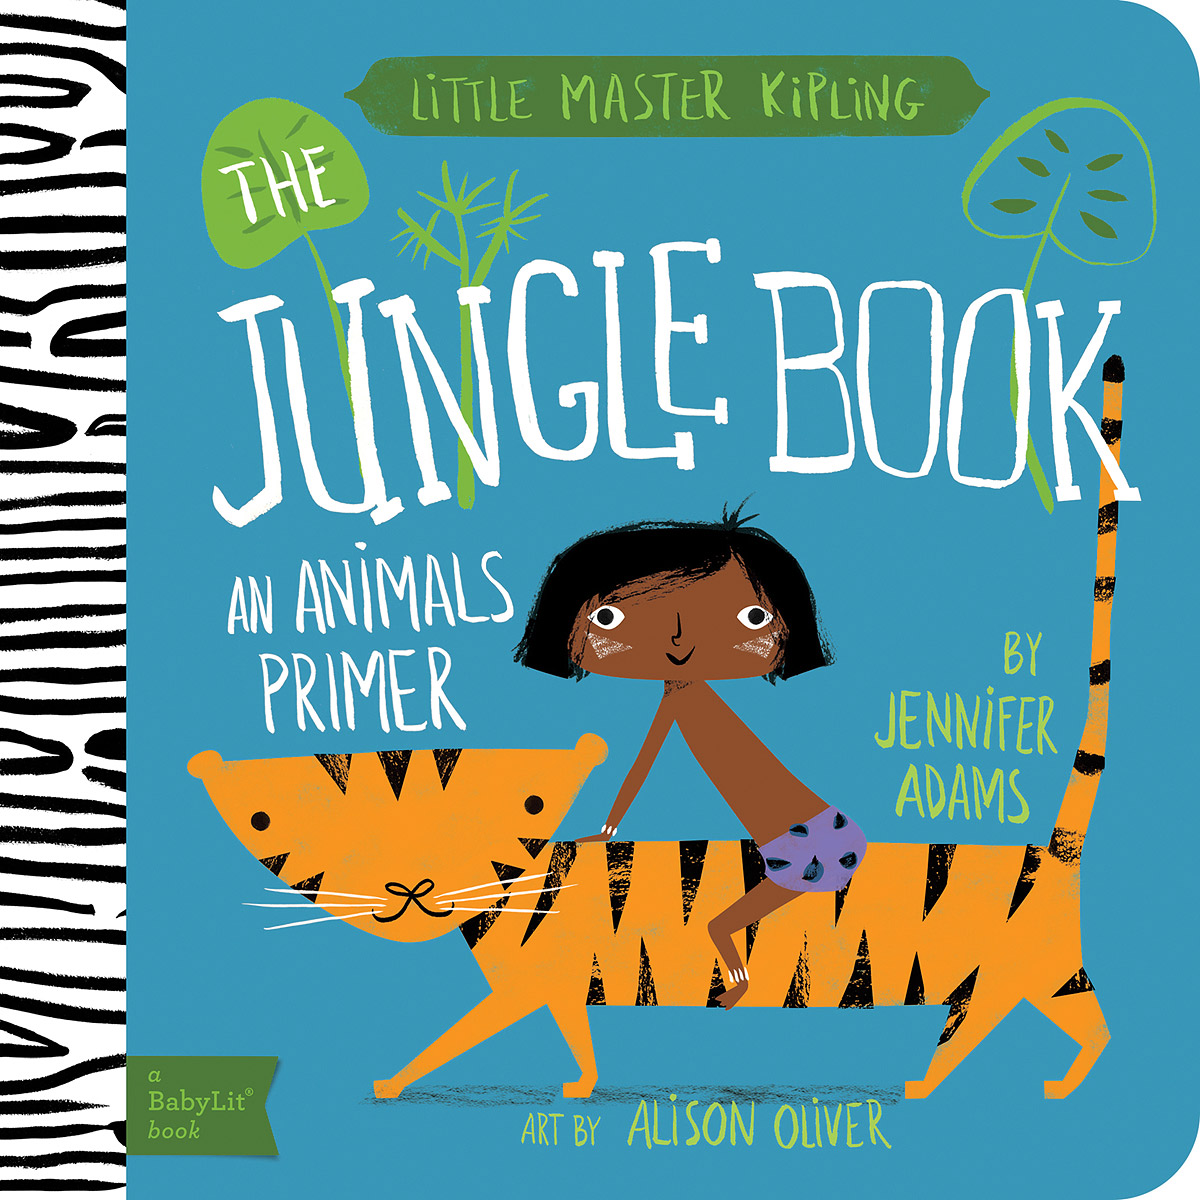 Little Master Kipling: Jungle Book love a book of quotations